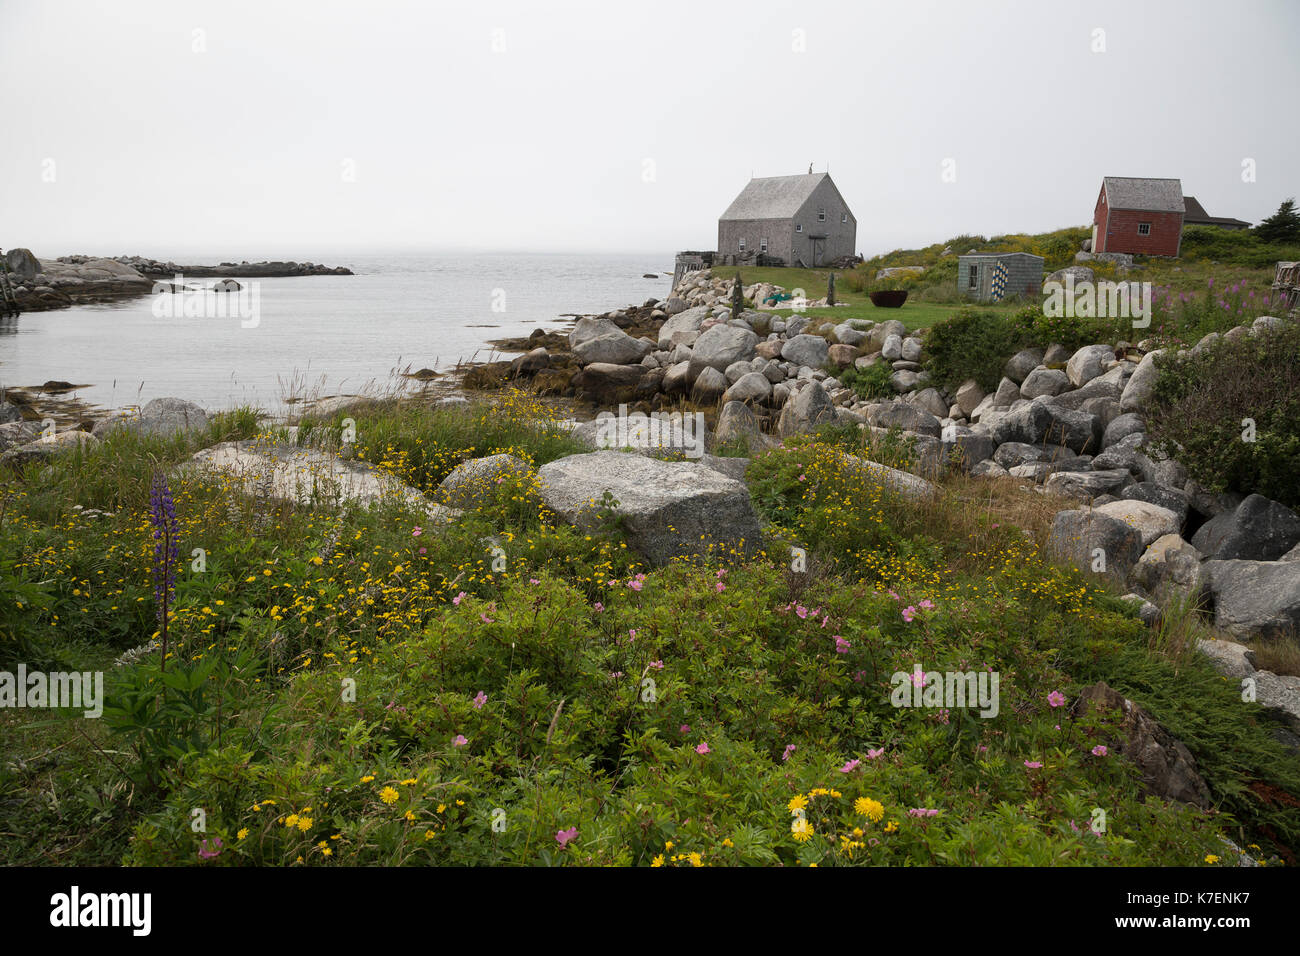 Middle Point Cove #1 - Stock Image